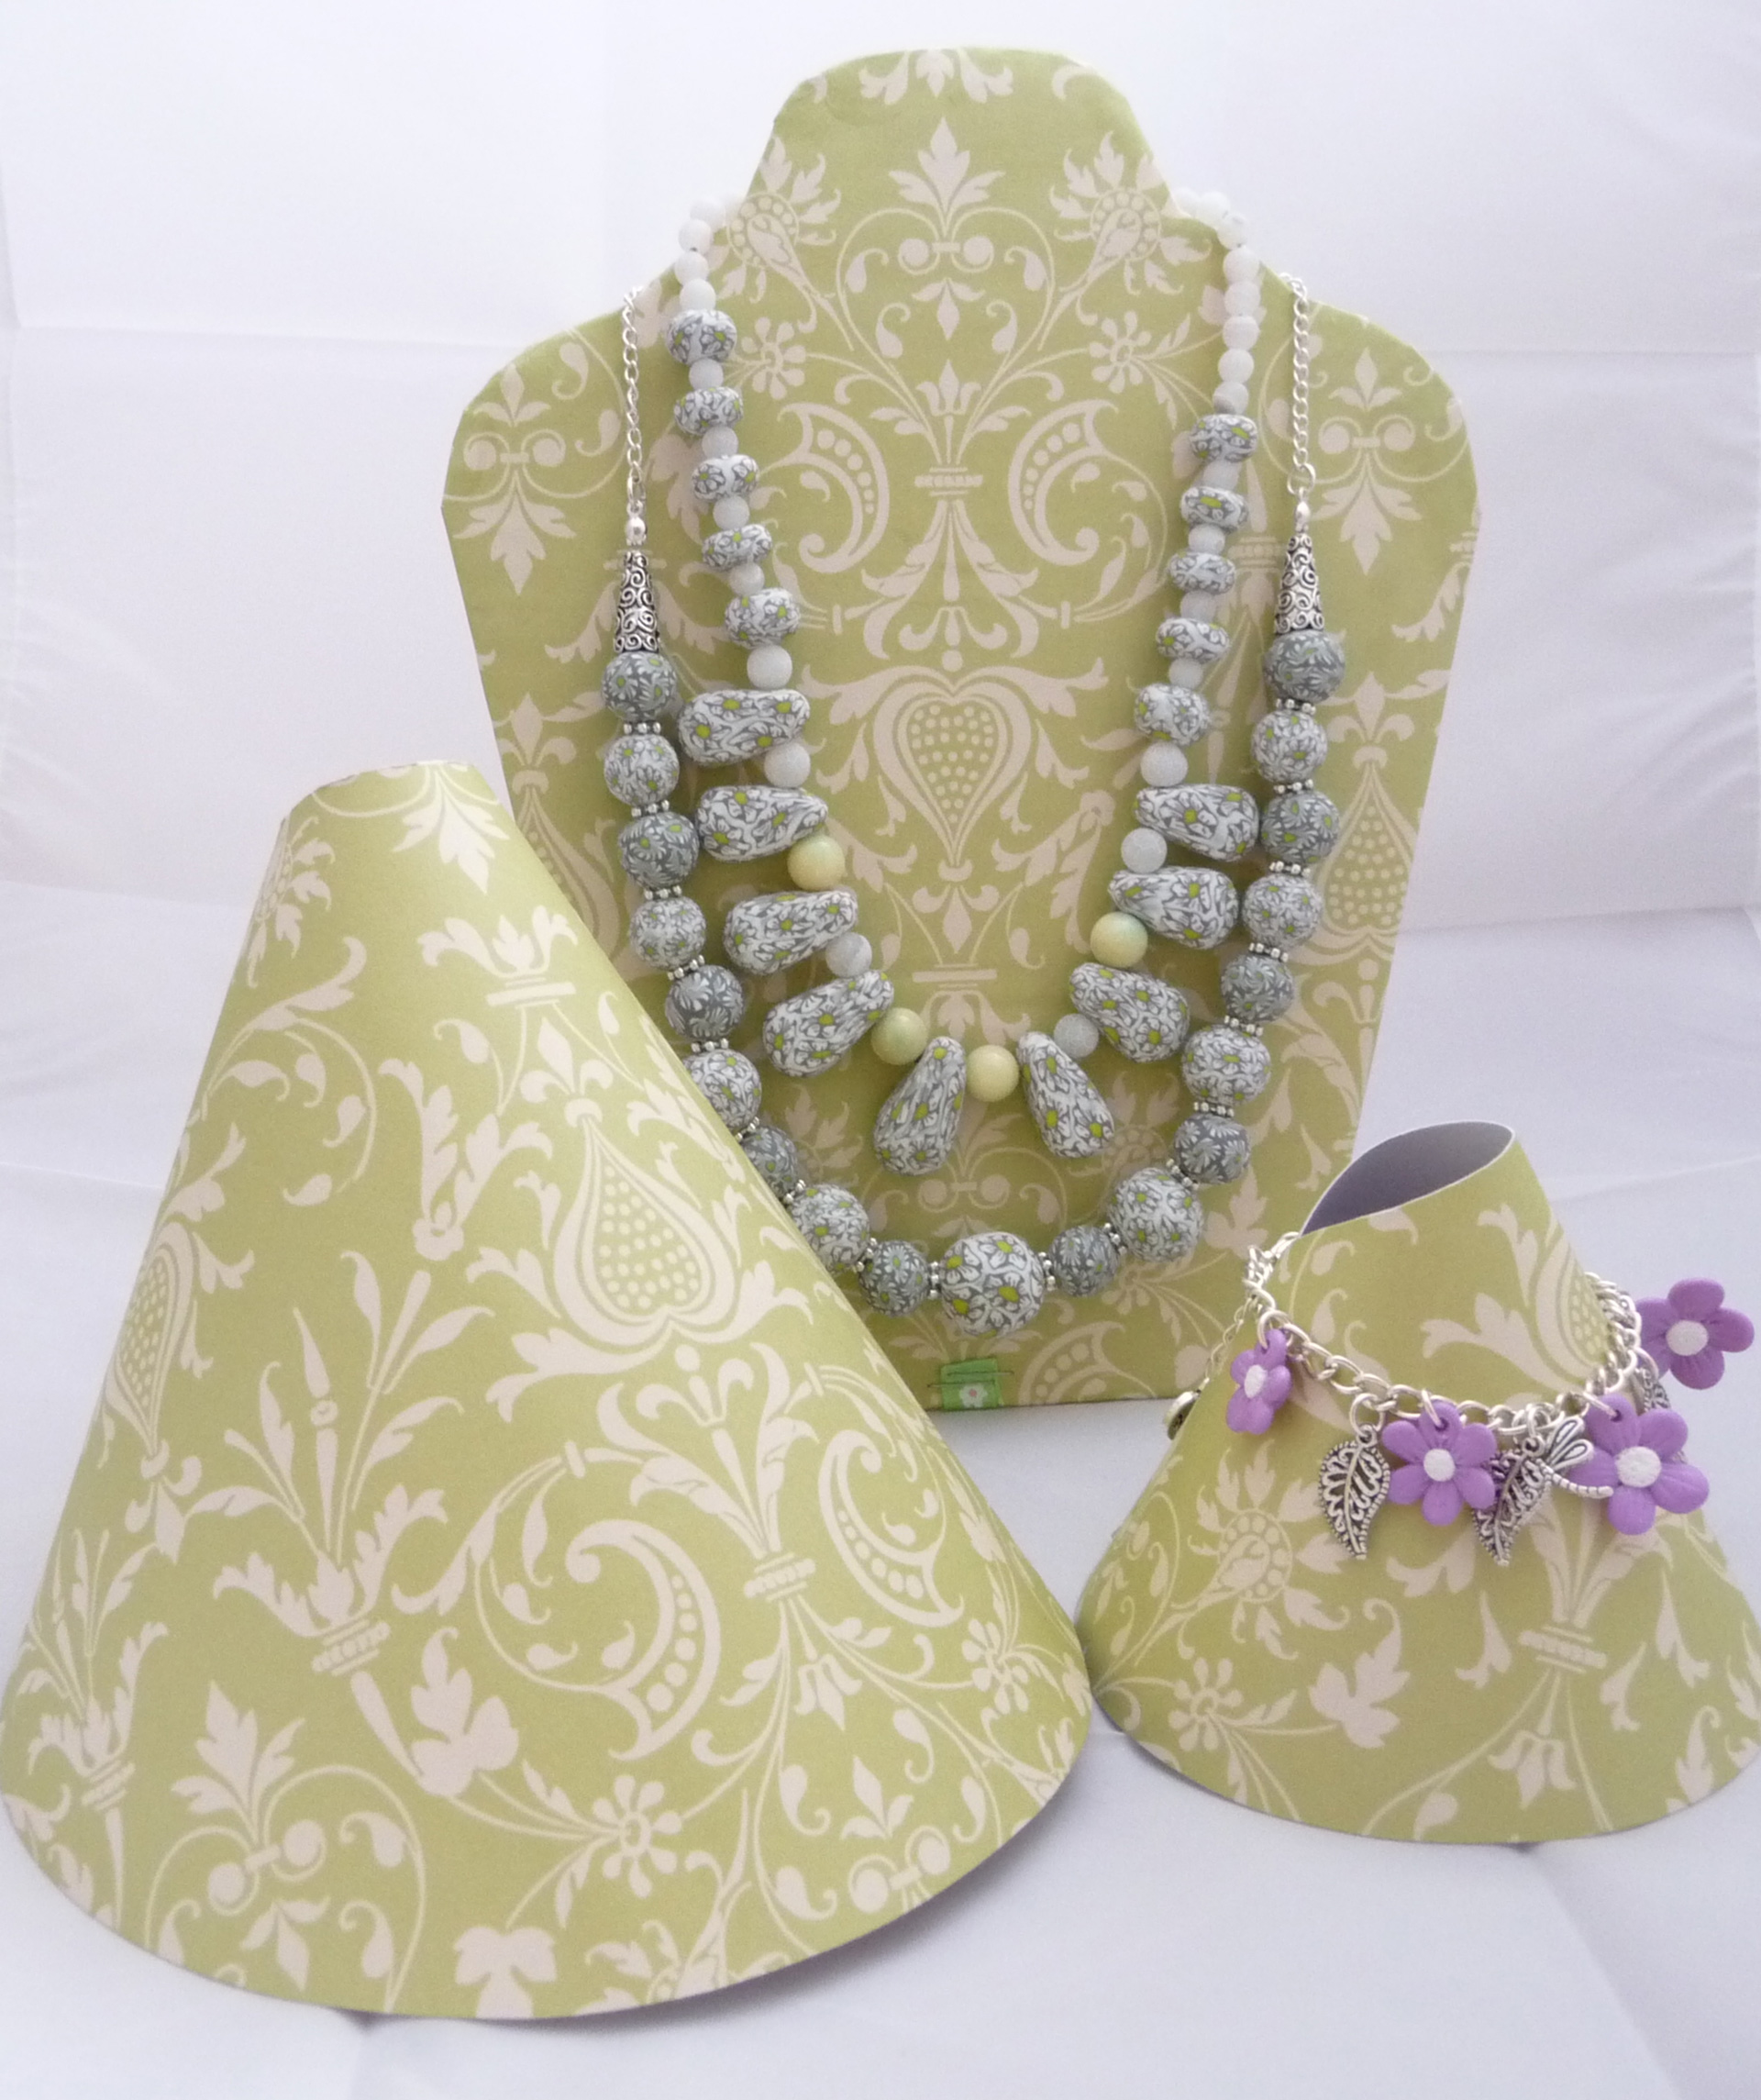 Necklace display ideas using holders made from tick paper with beautiful motifs and cut or bent different forms.